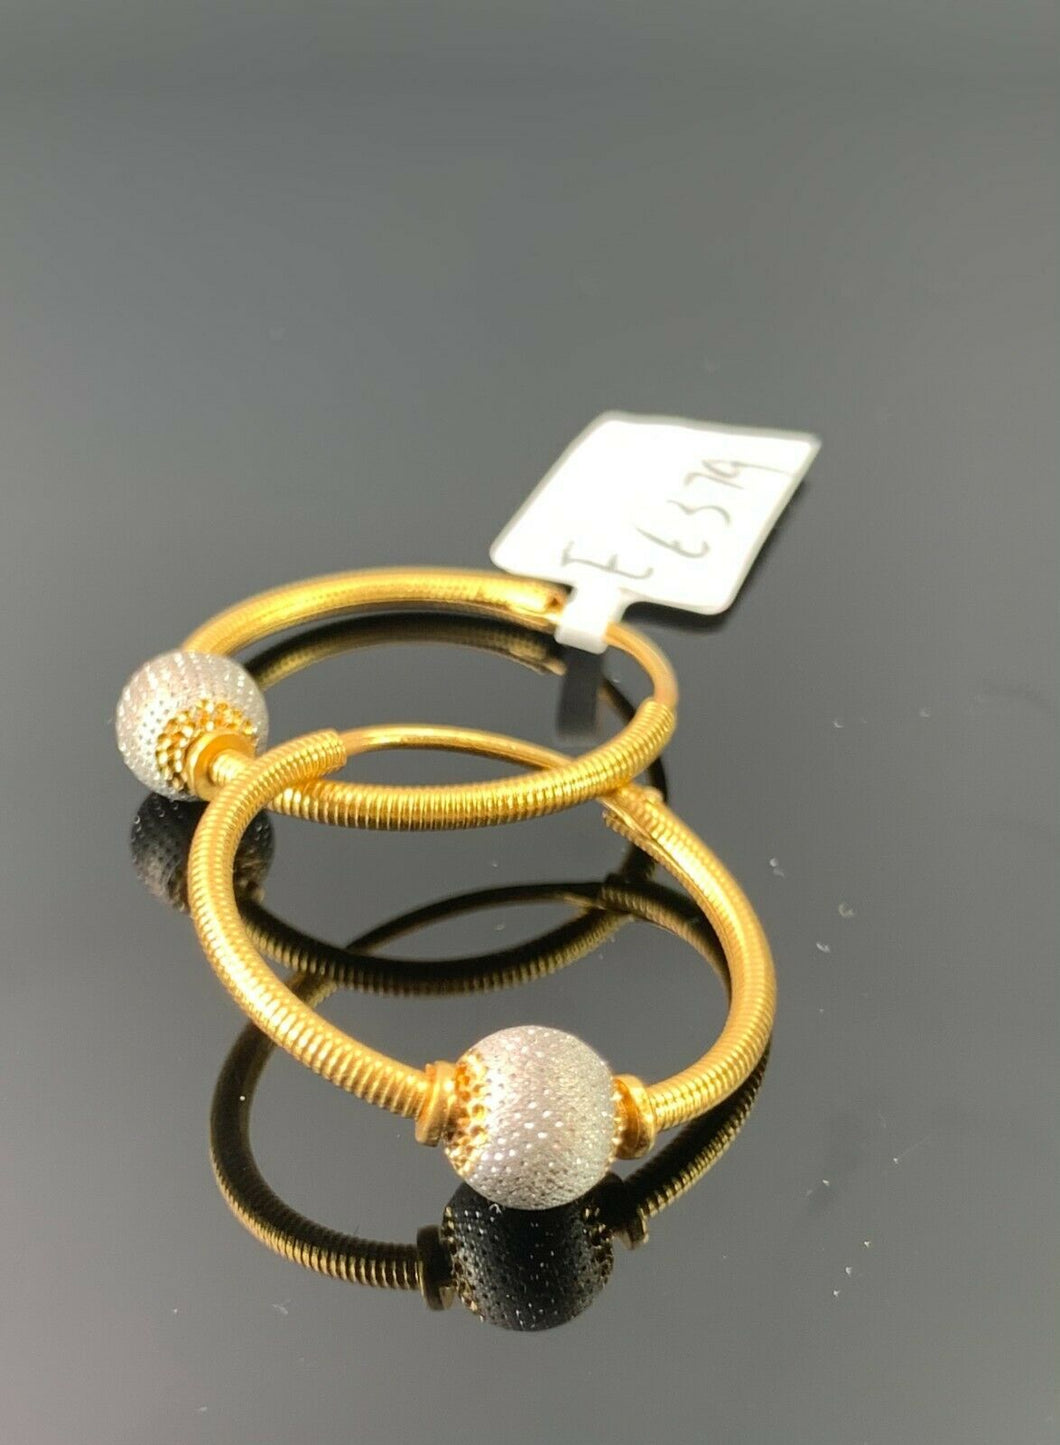 22k Earrings Solid Gold Ladies Jewelry Simple Two Tone Hoops with Bead E6379 - Royal Dubai Jewellers